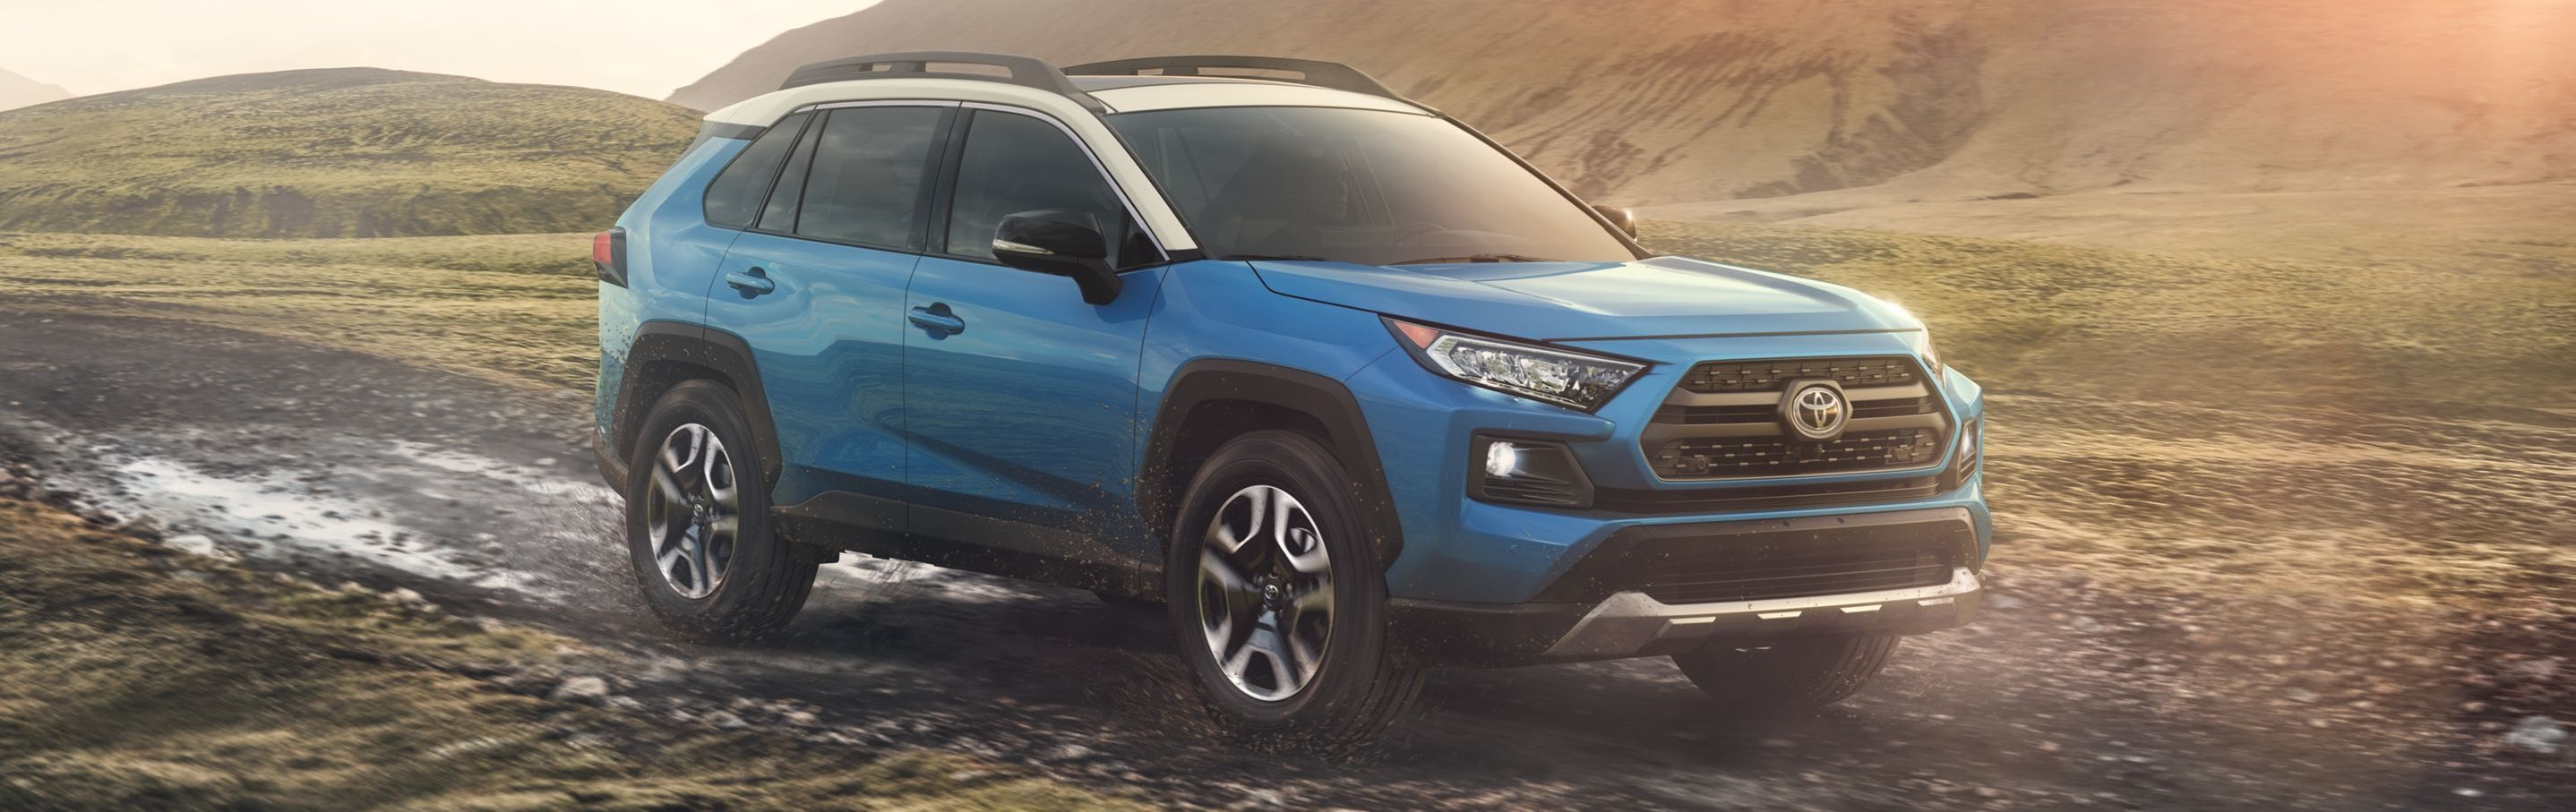 2019 Toyota RAV4 for Sale near White Plains, NY